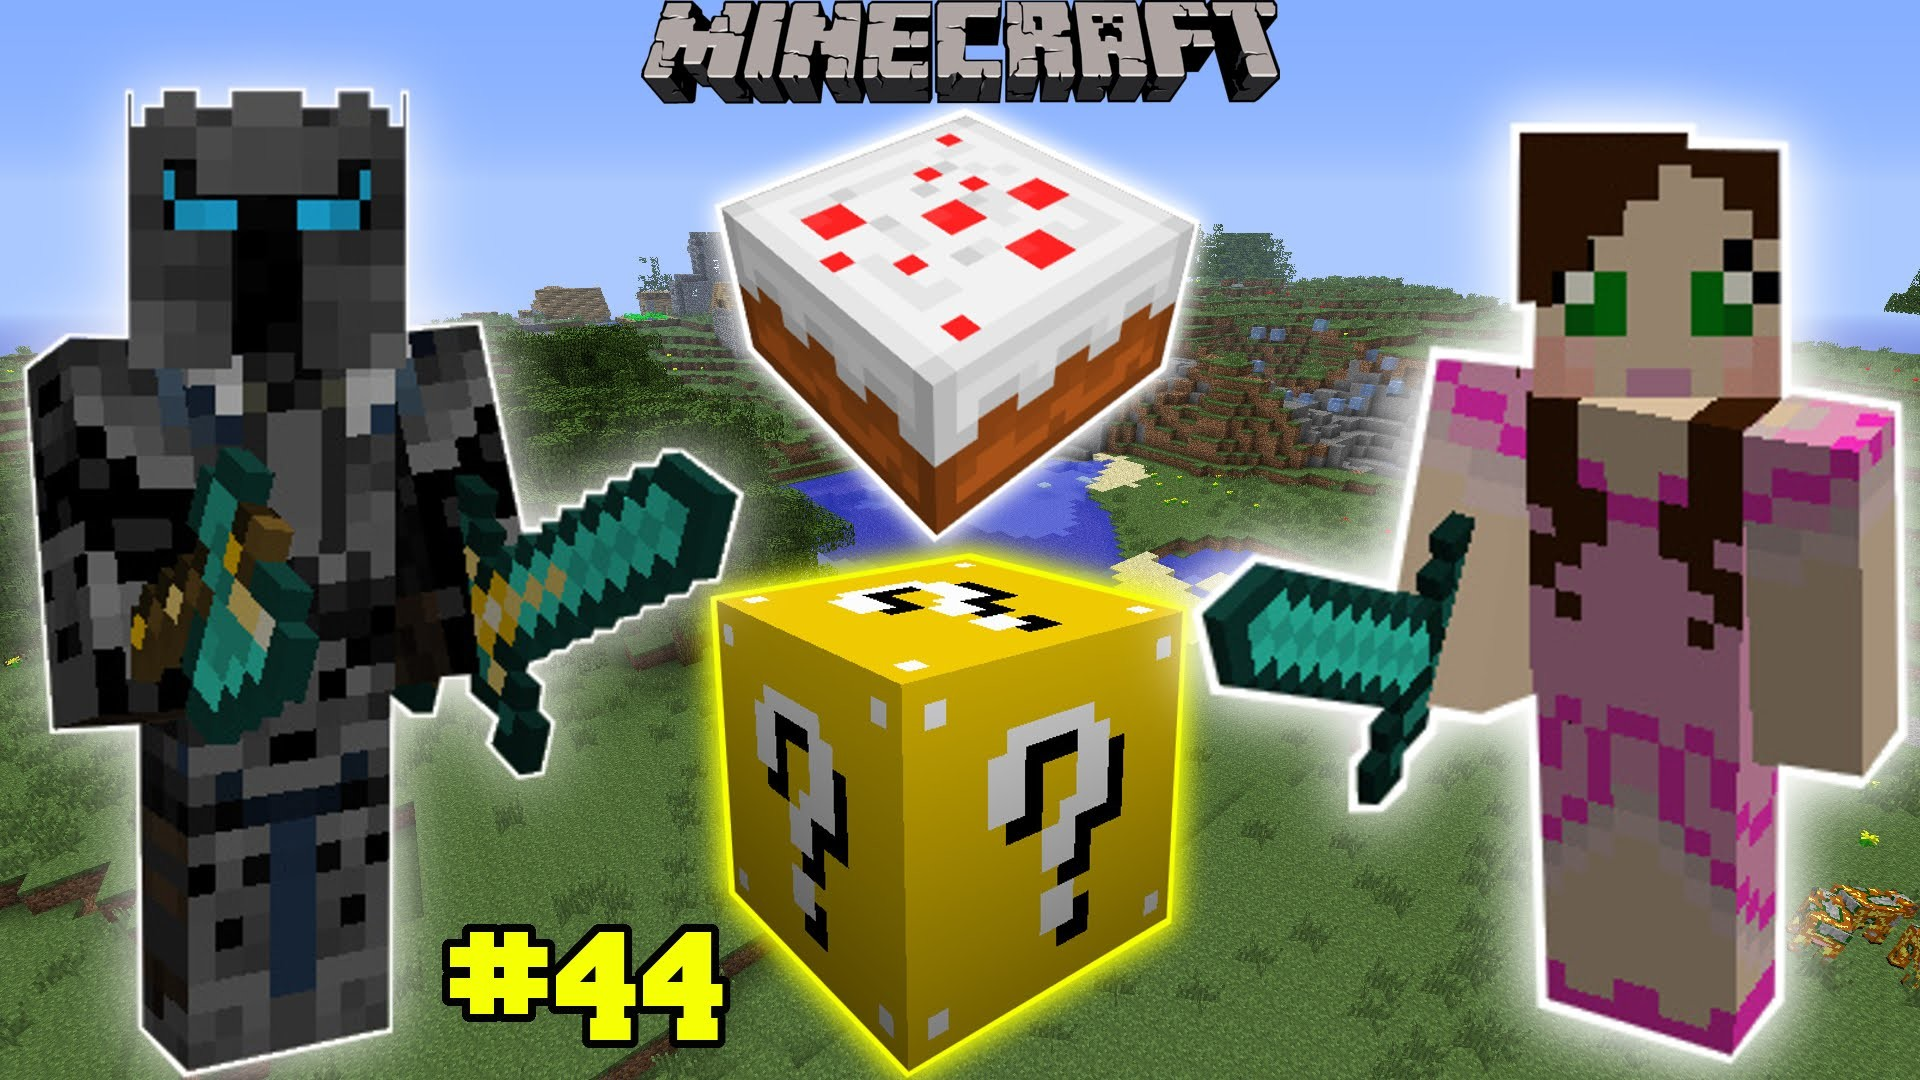 1920x1080 minecraft-party-challenge-eps6-4.jpg